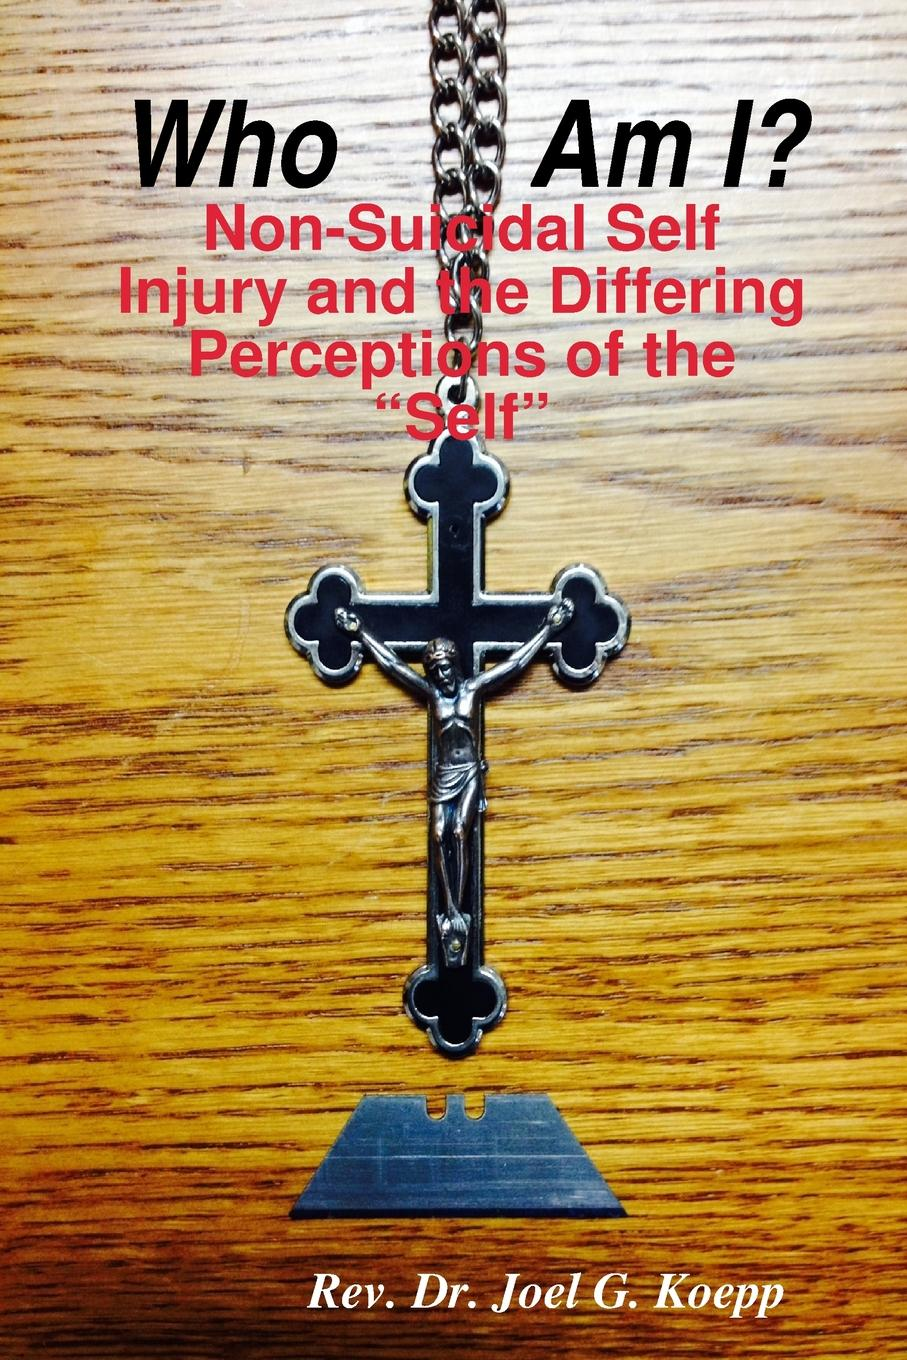 Rev. Dr. Joel G. Koepp Who Am I. Non-Suicidal Self Injury and the Differing Perceptions of the